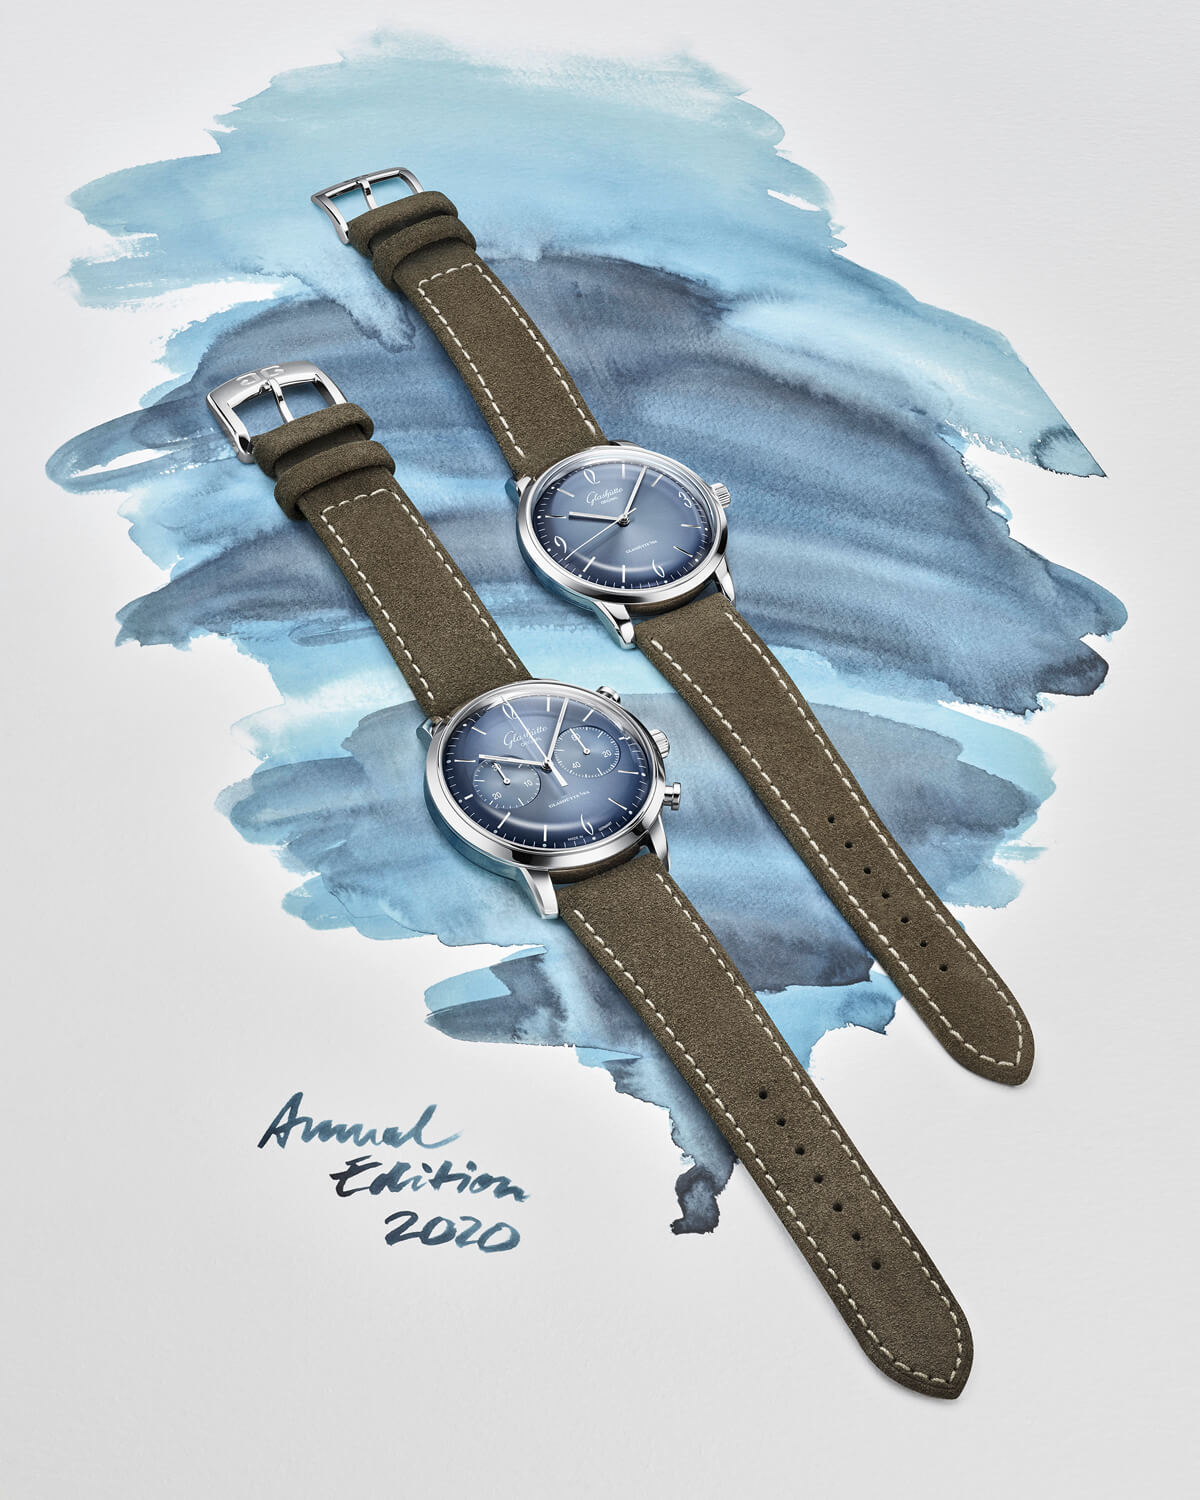 Glashütte Original Sixties Annual Edition 2020